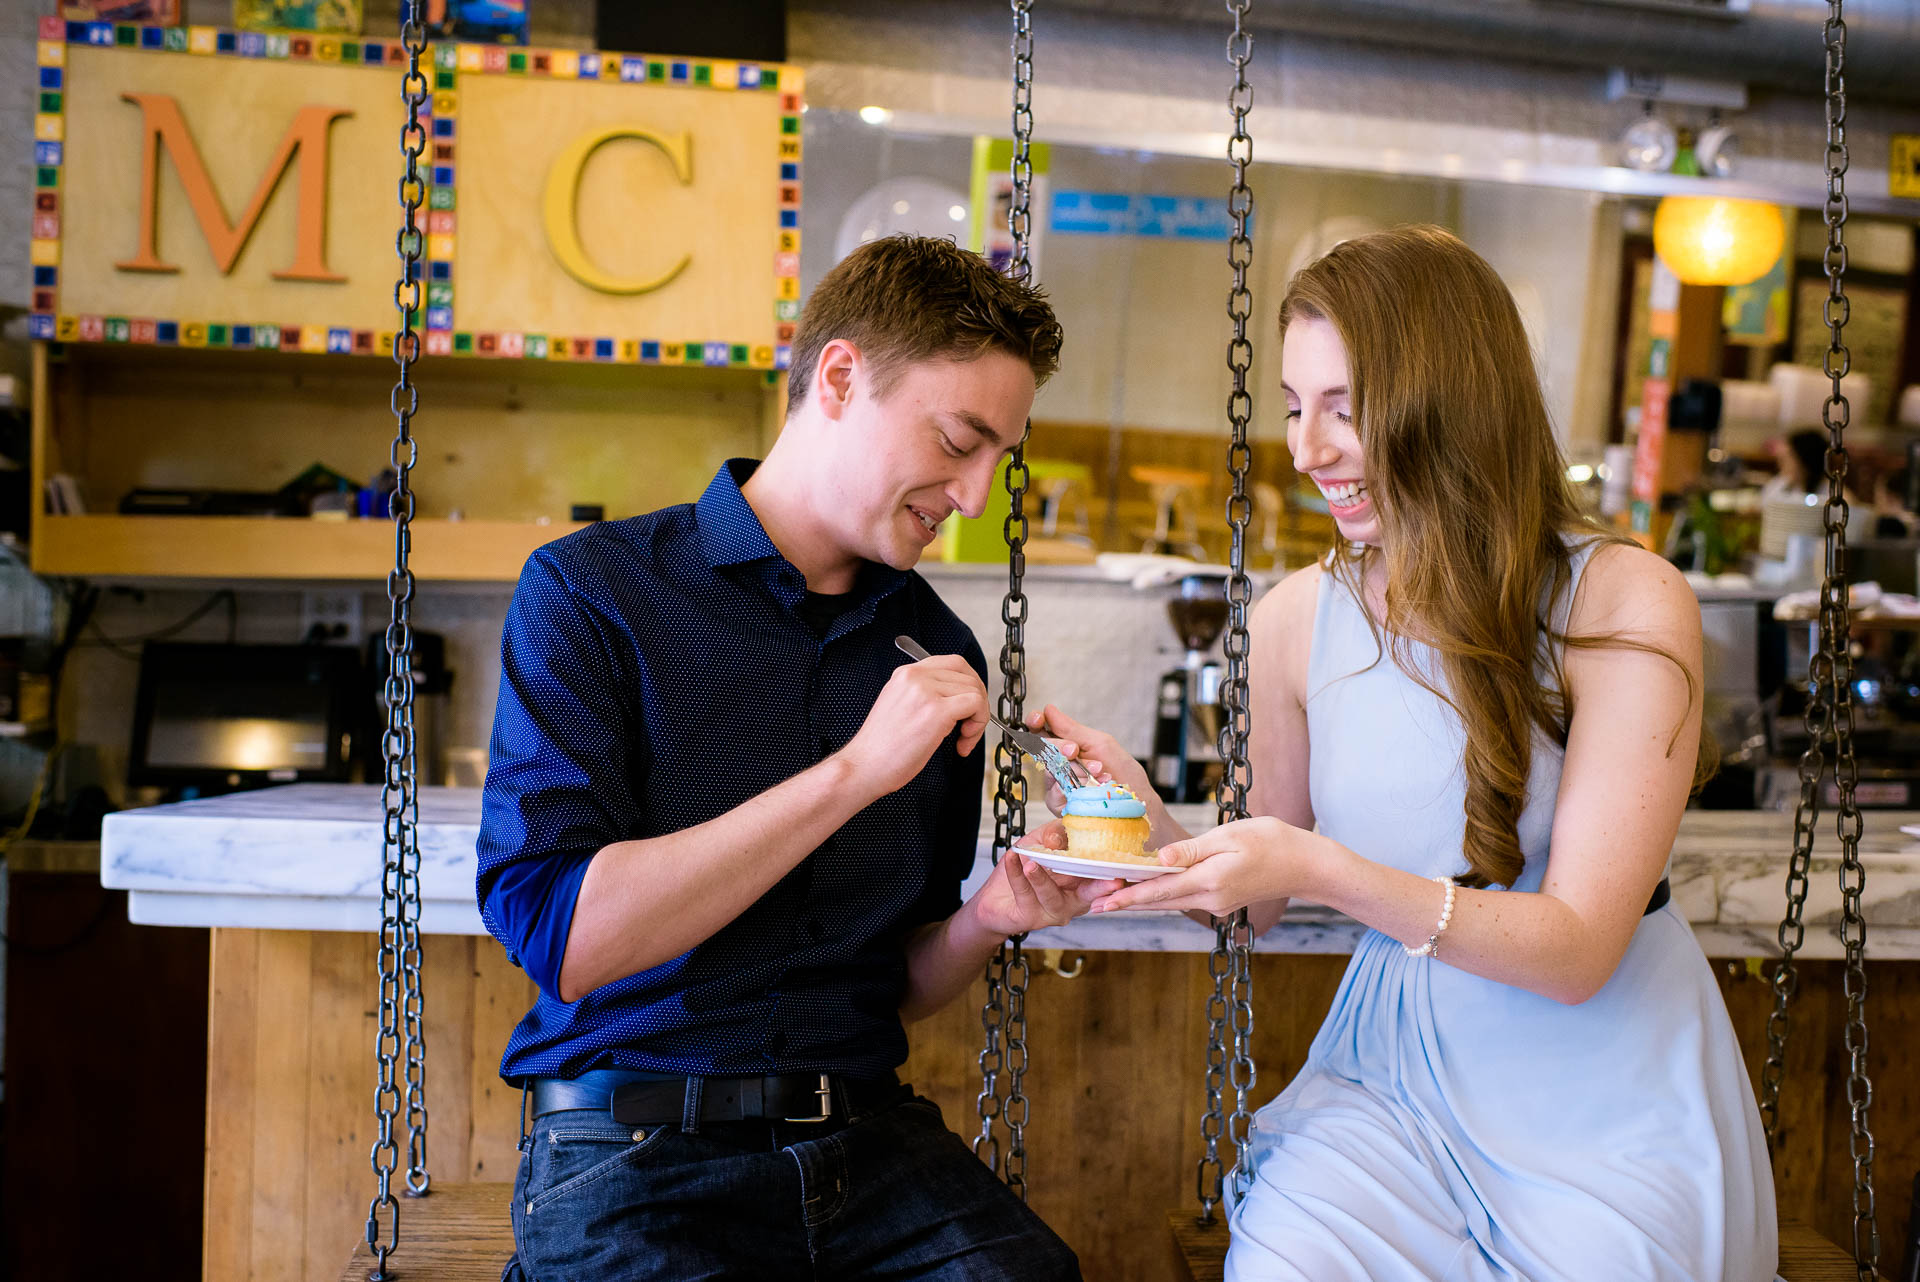 Chicago engagement session at Molly's Cupcakes in Lincoln Park.